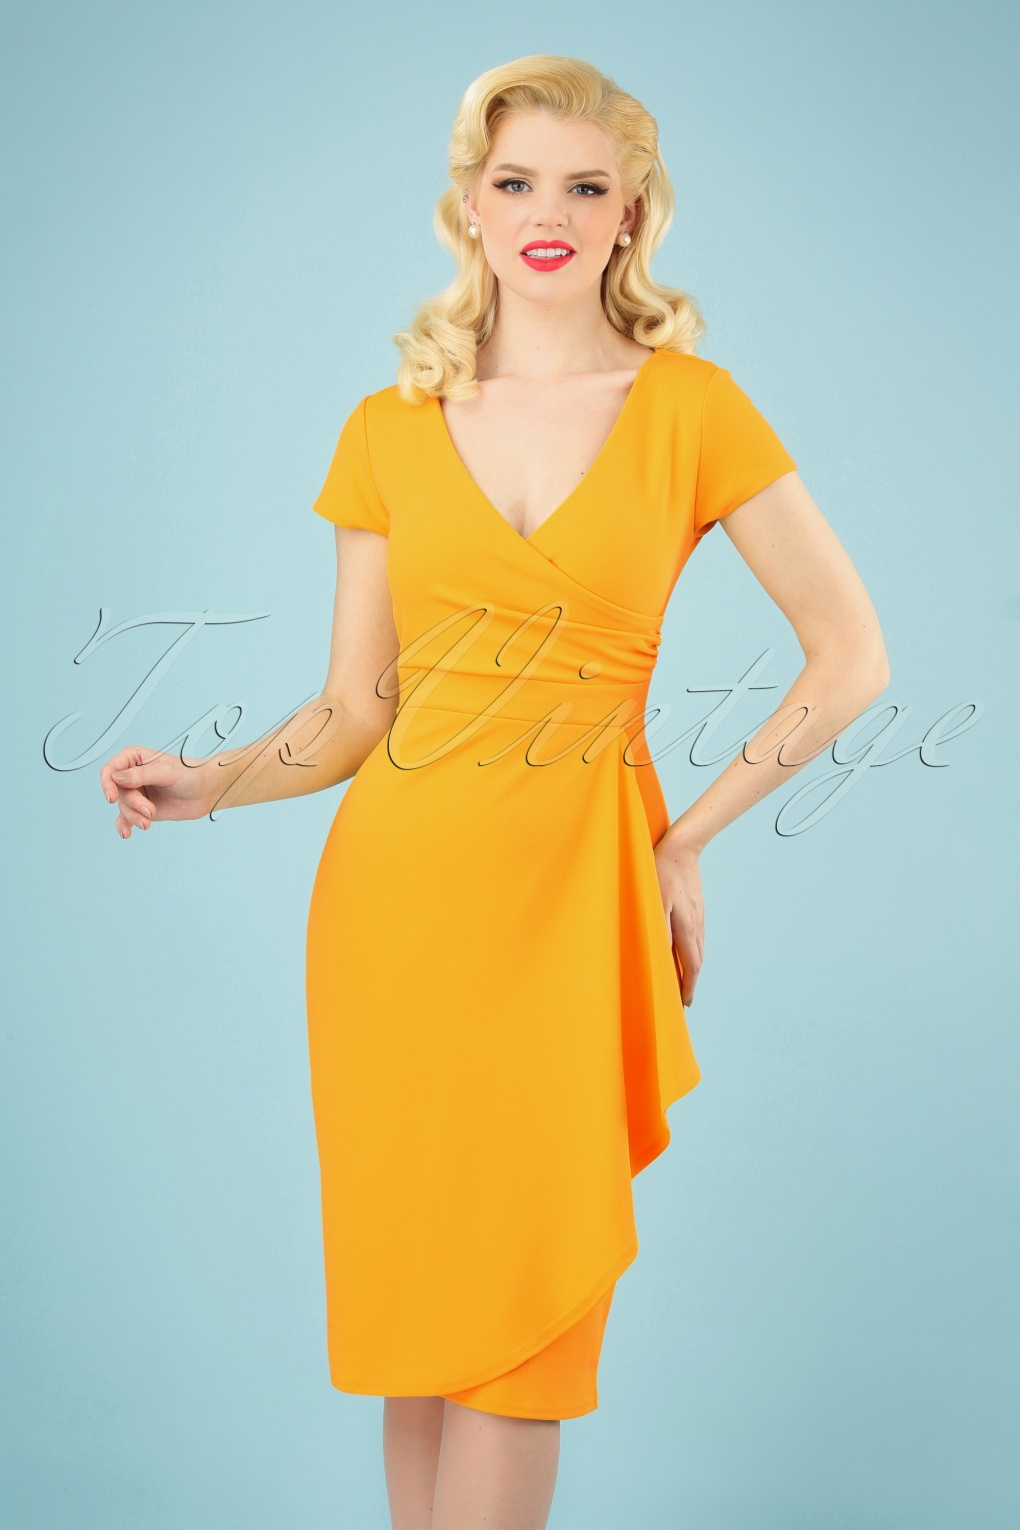 Wiggle Dresses | Pencil Dresses 40s, 50s, 60s 50s Crystal Pencil Dress in Honey Yellow £35.02 AT vintagedancer.com